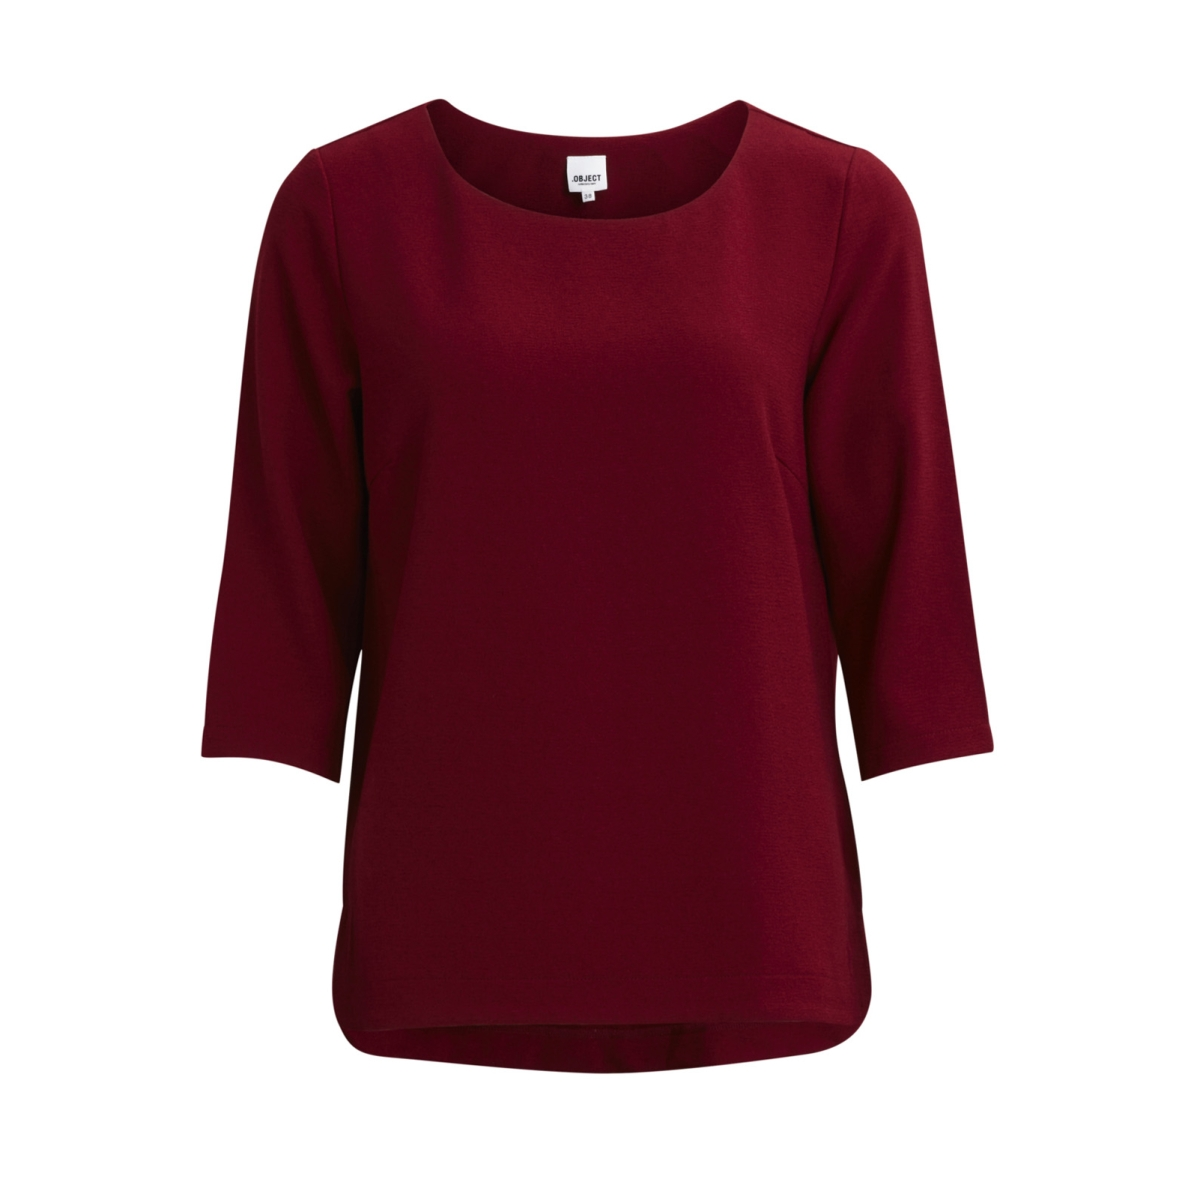 objcorlee 3/4 top noos 23024282 object t-shirt pomegranate